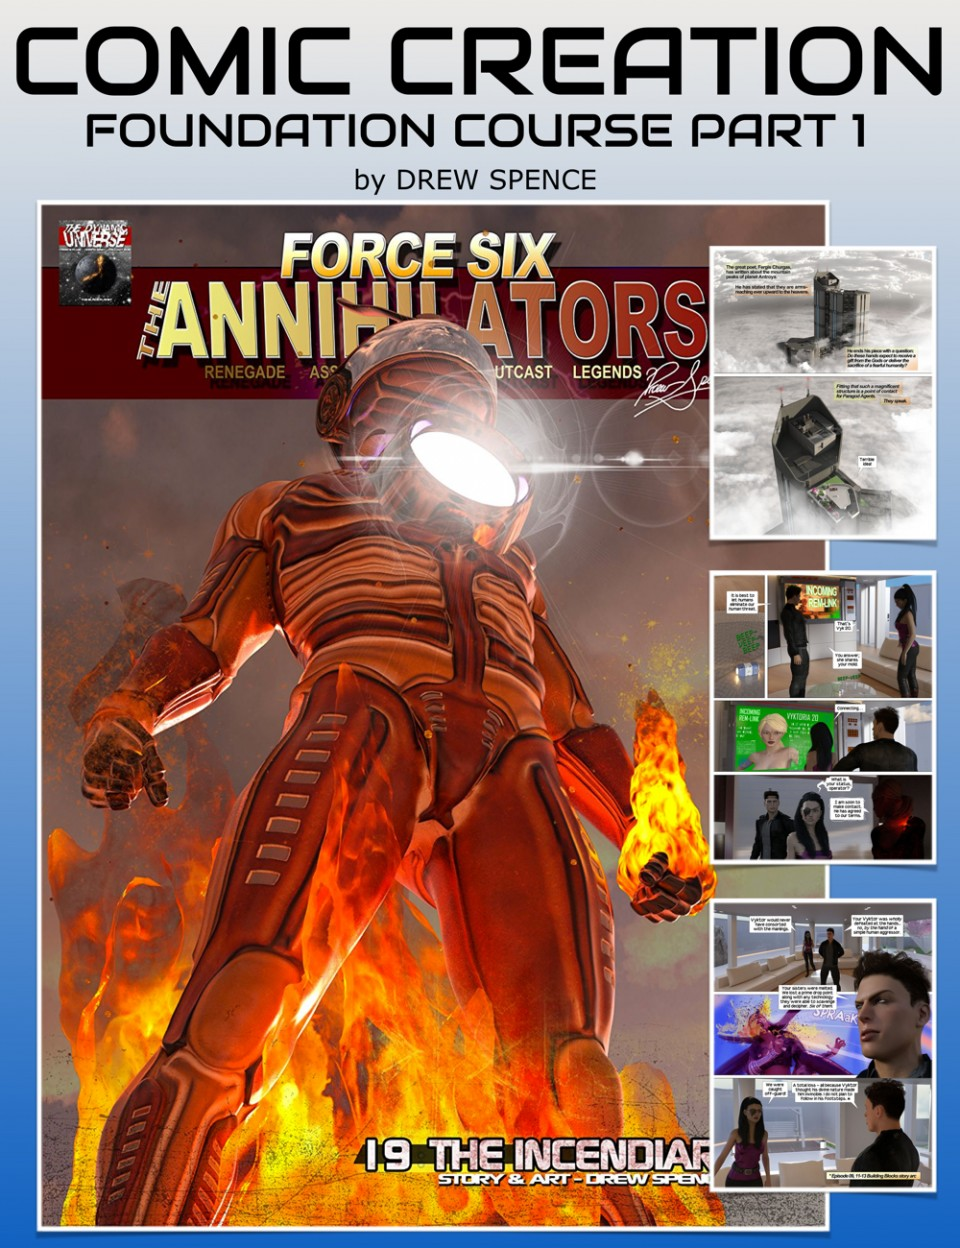 comic-book-creation--foundation-course-part-1-00-main-daz3d